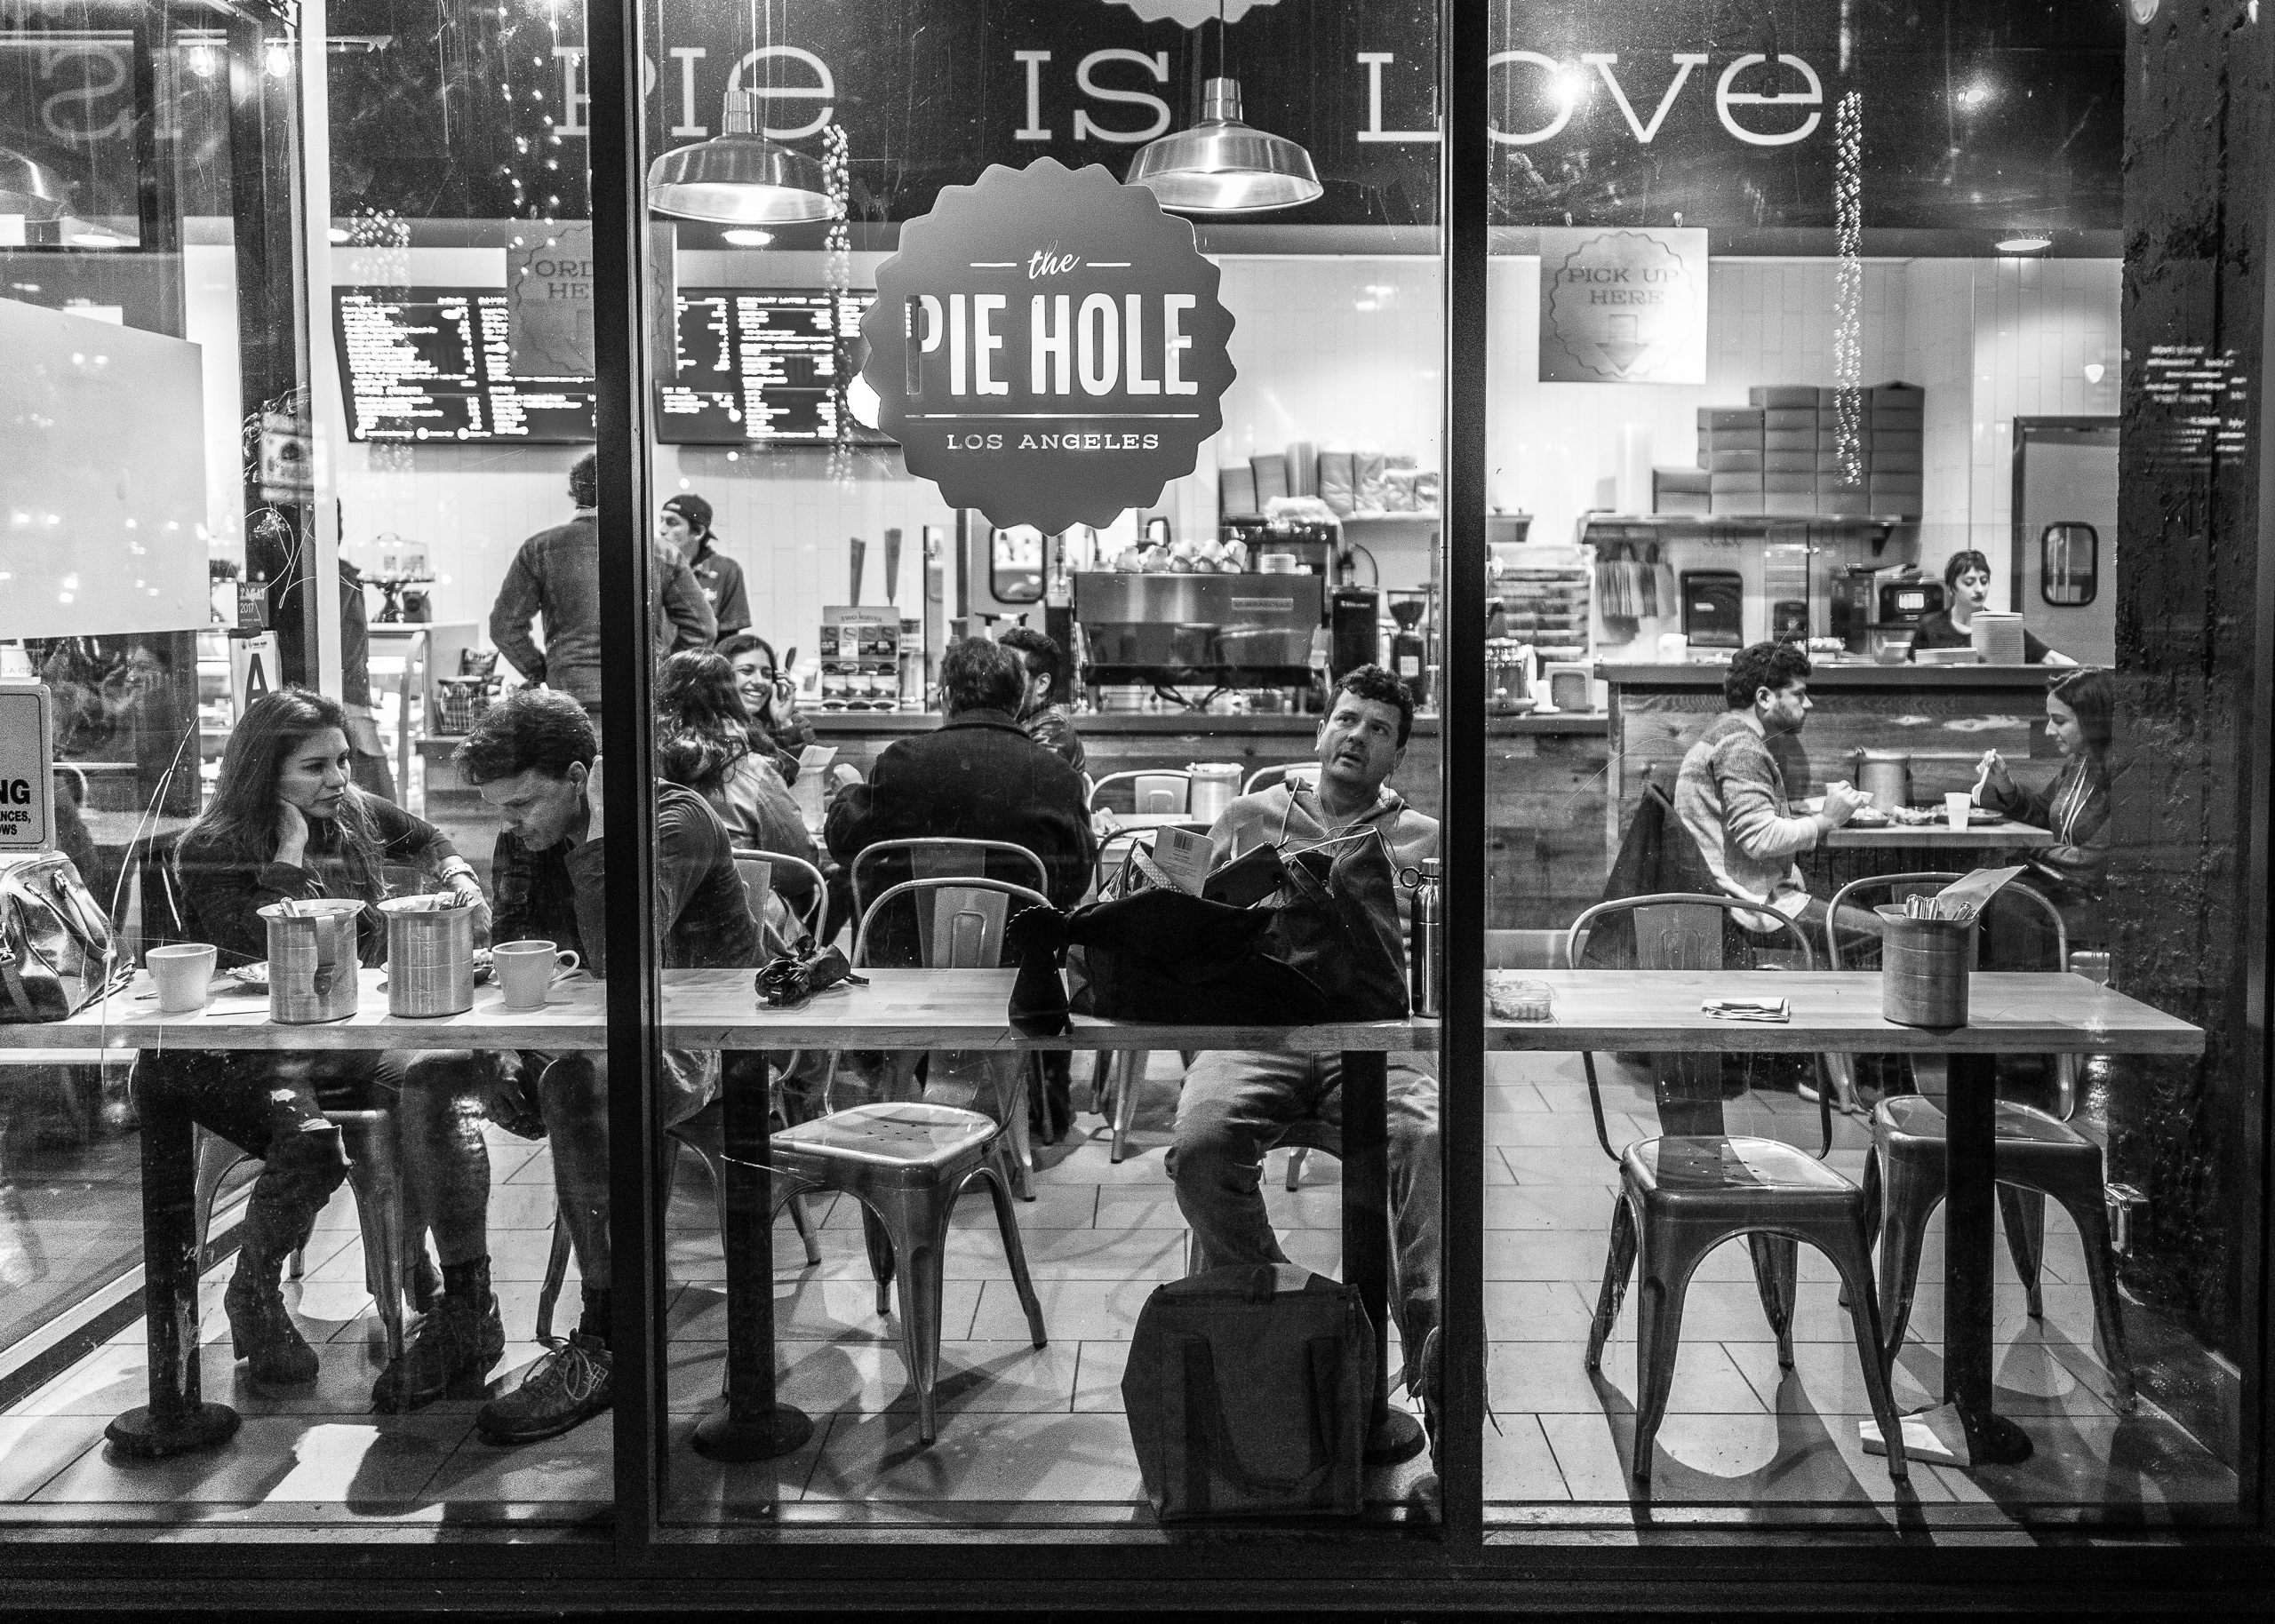 The Pie Hole, Los Angeles, on Hollywood Blvd near Vine. View looking in through large floor-to-ceiling windows of people eating pie